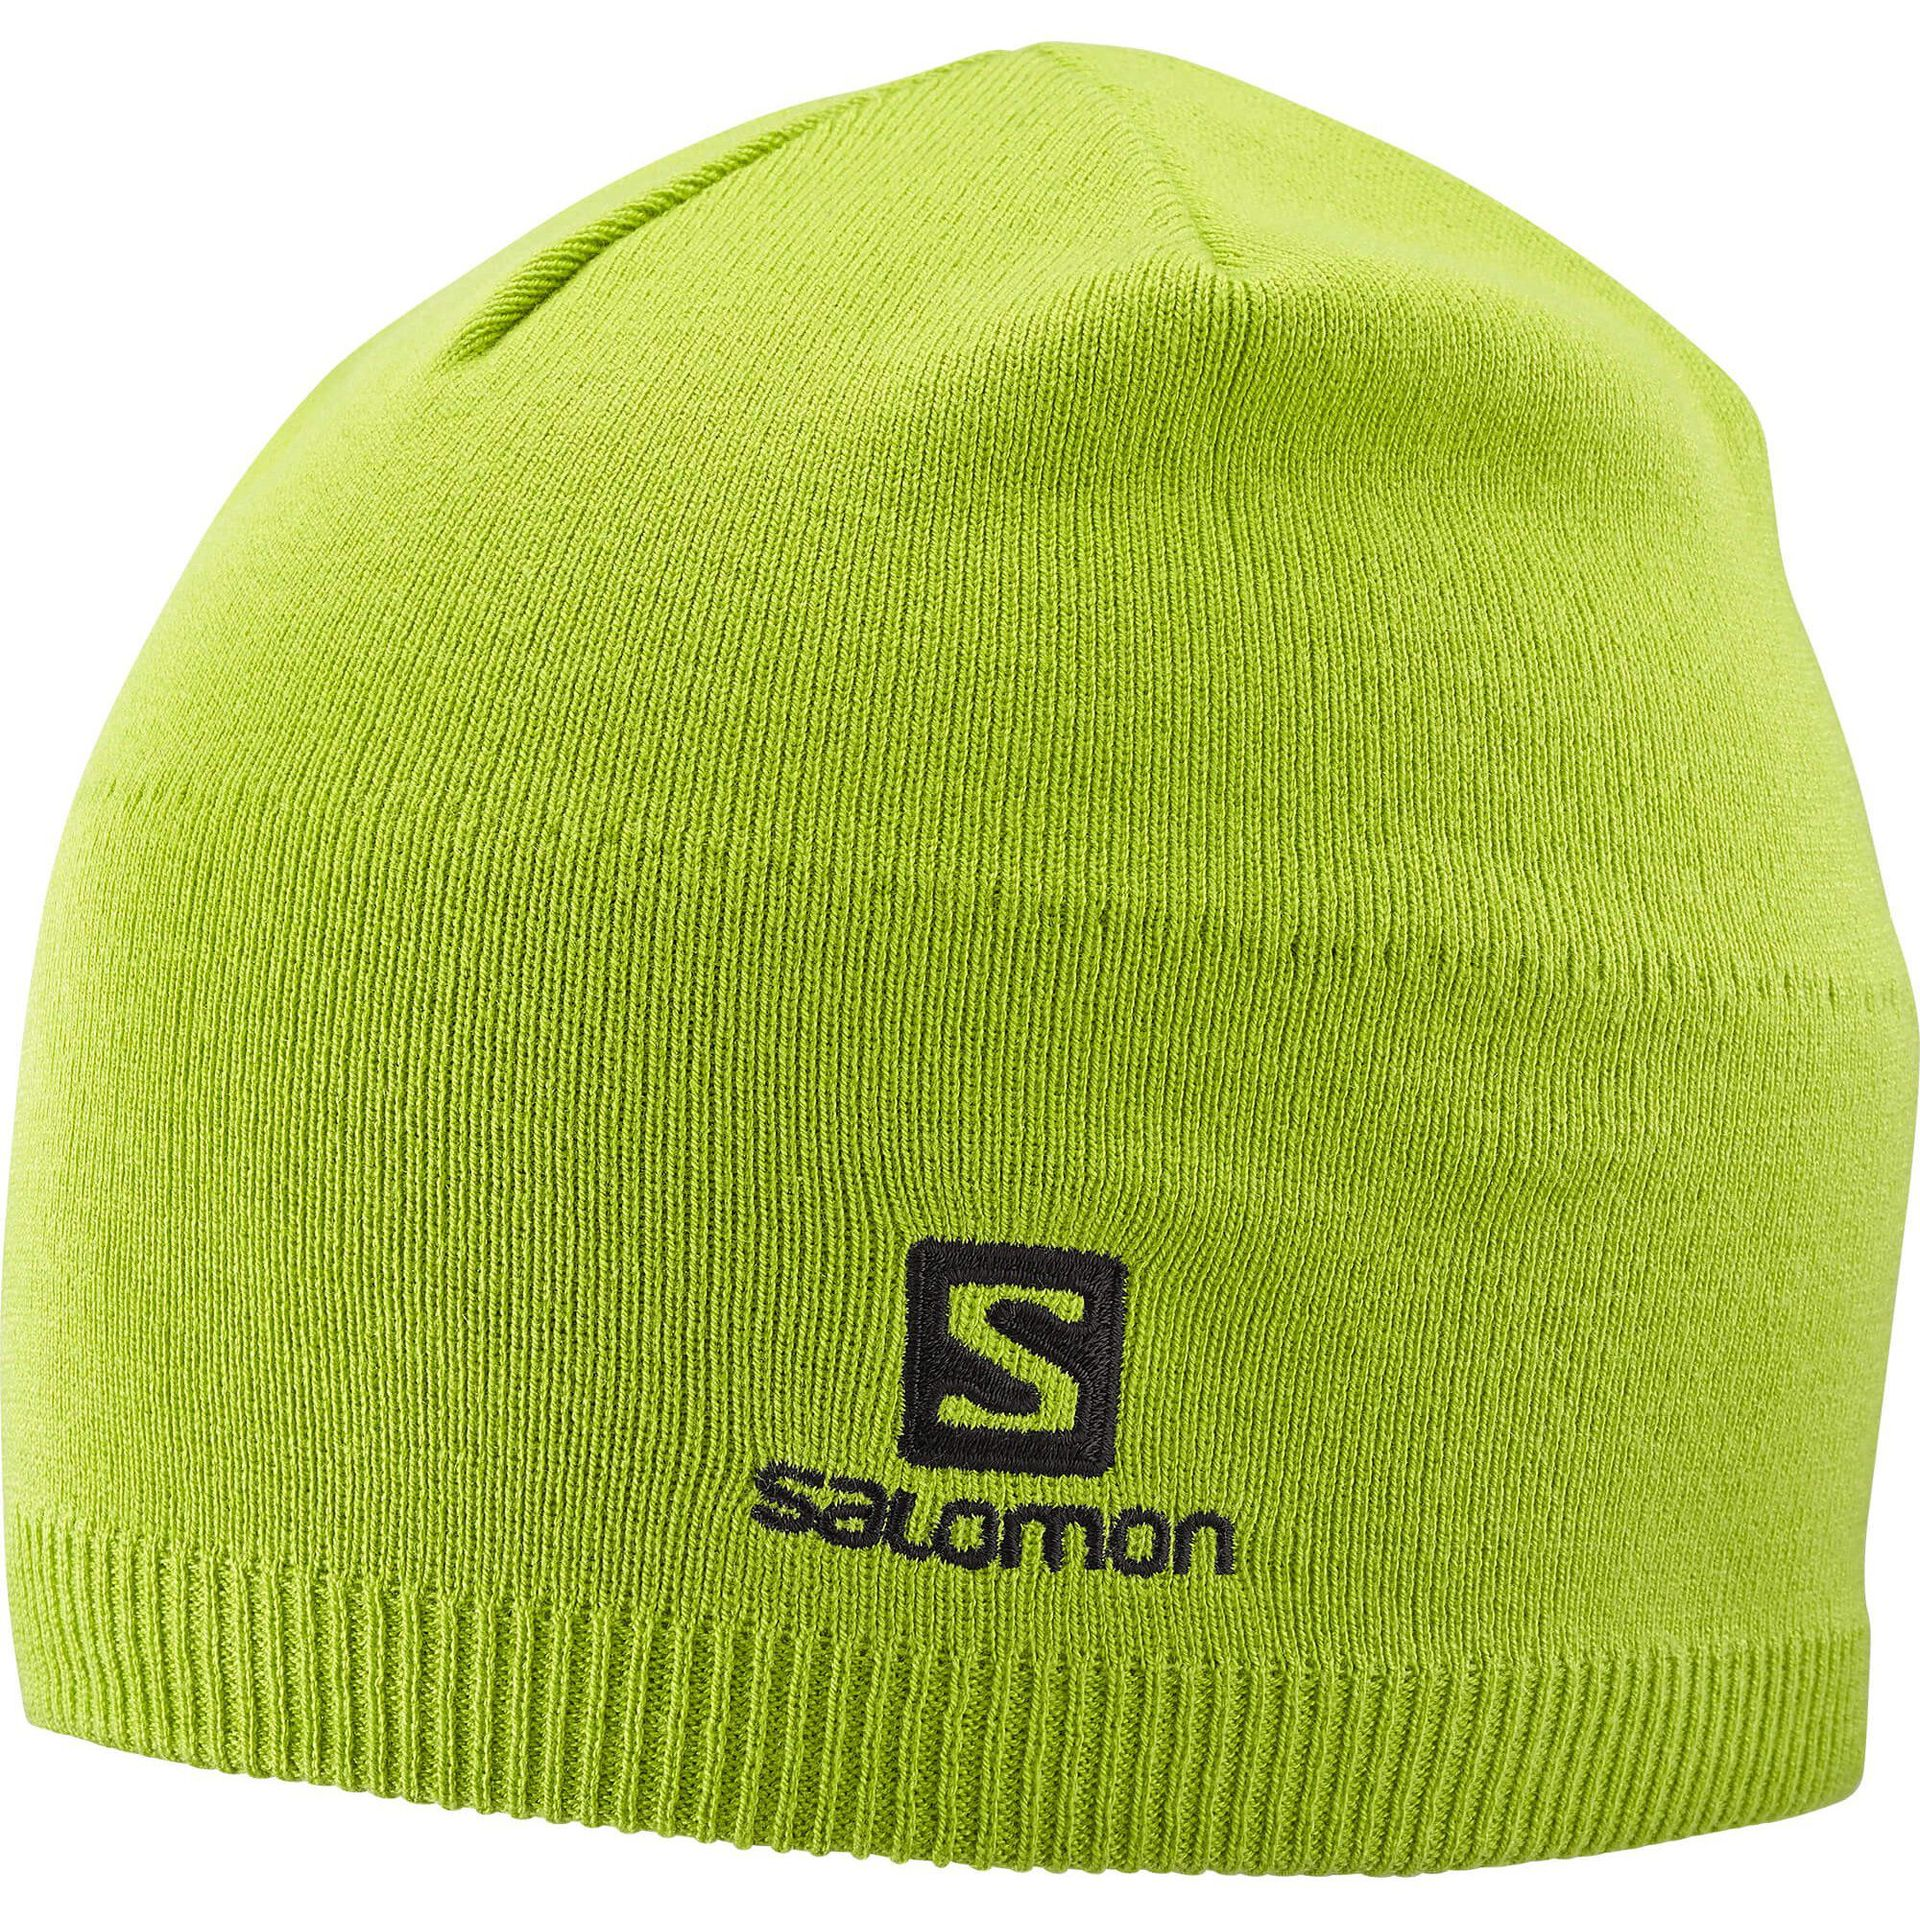 CZAPKA SALOMON SALOMON BEANIE LIME GREEN 402842